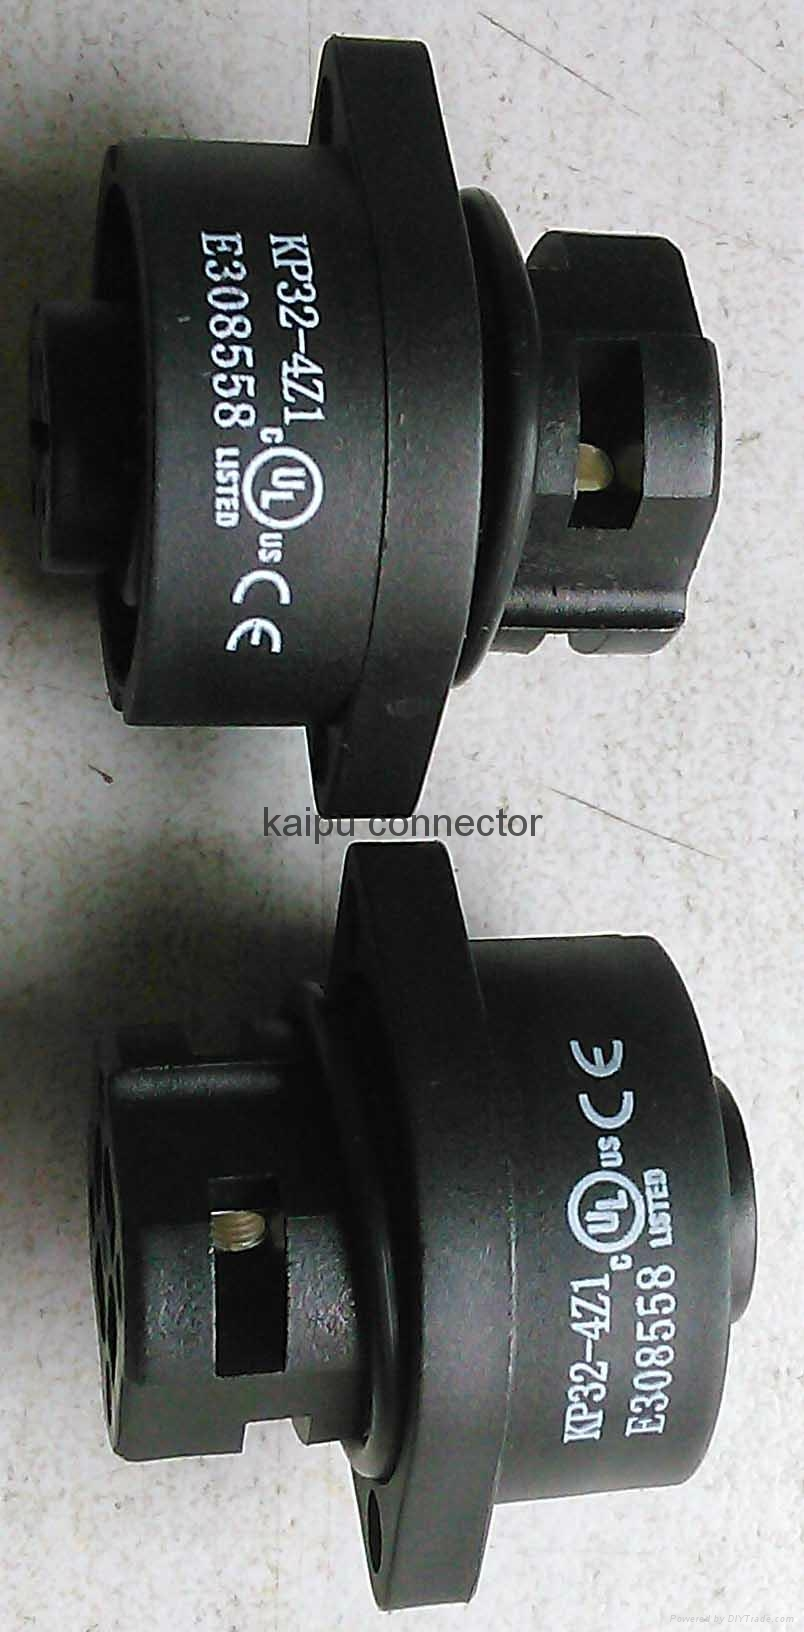 KP32 type circular water proof connectors 3